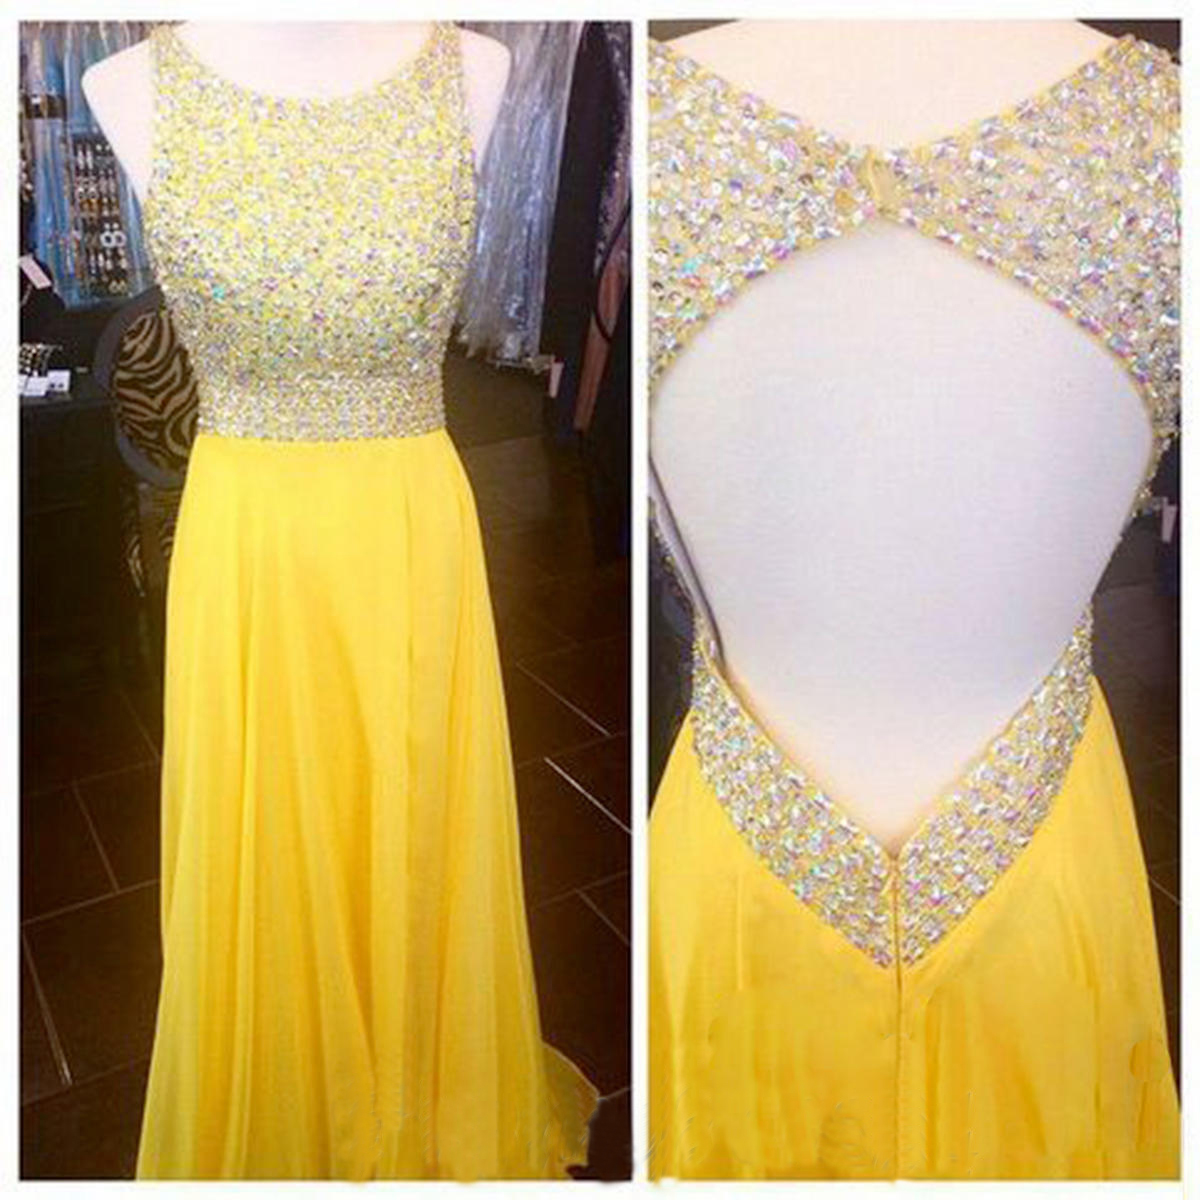 Open Back Prom Dresses, Yellow Prom Dress, Long Prom Dresses, Cheap Prom Dresses, 2016 Prom Dresses, Custom Prom Dresses, Dresses For Prom